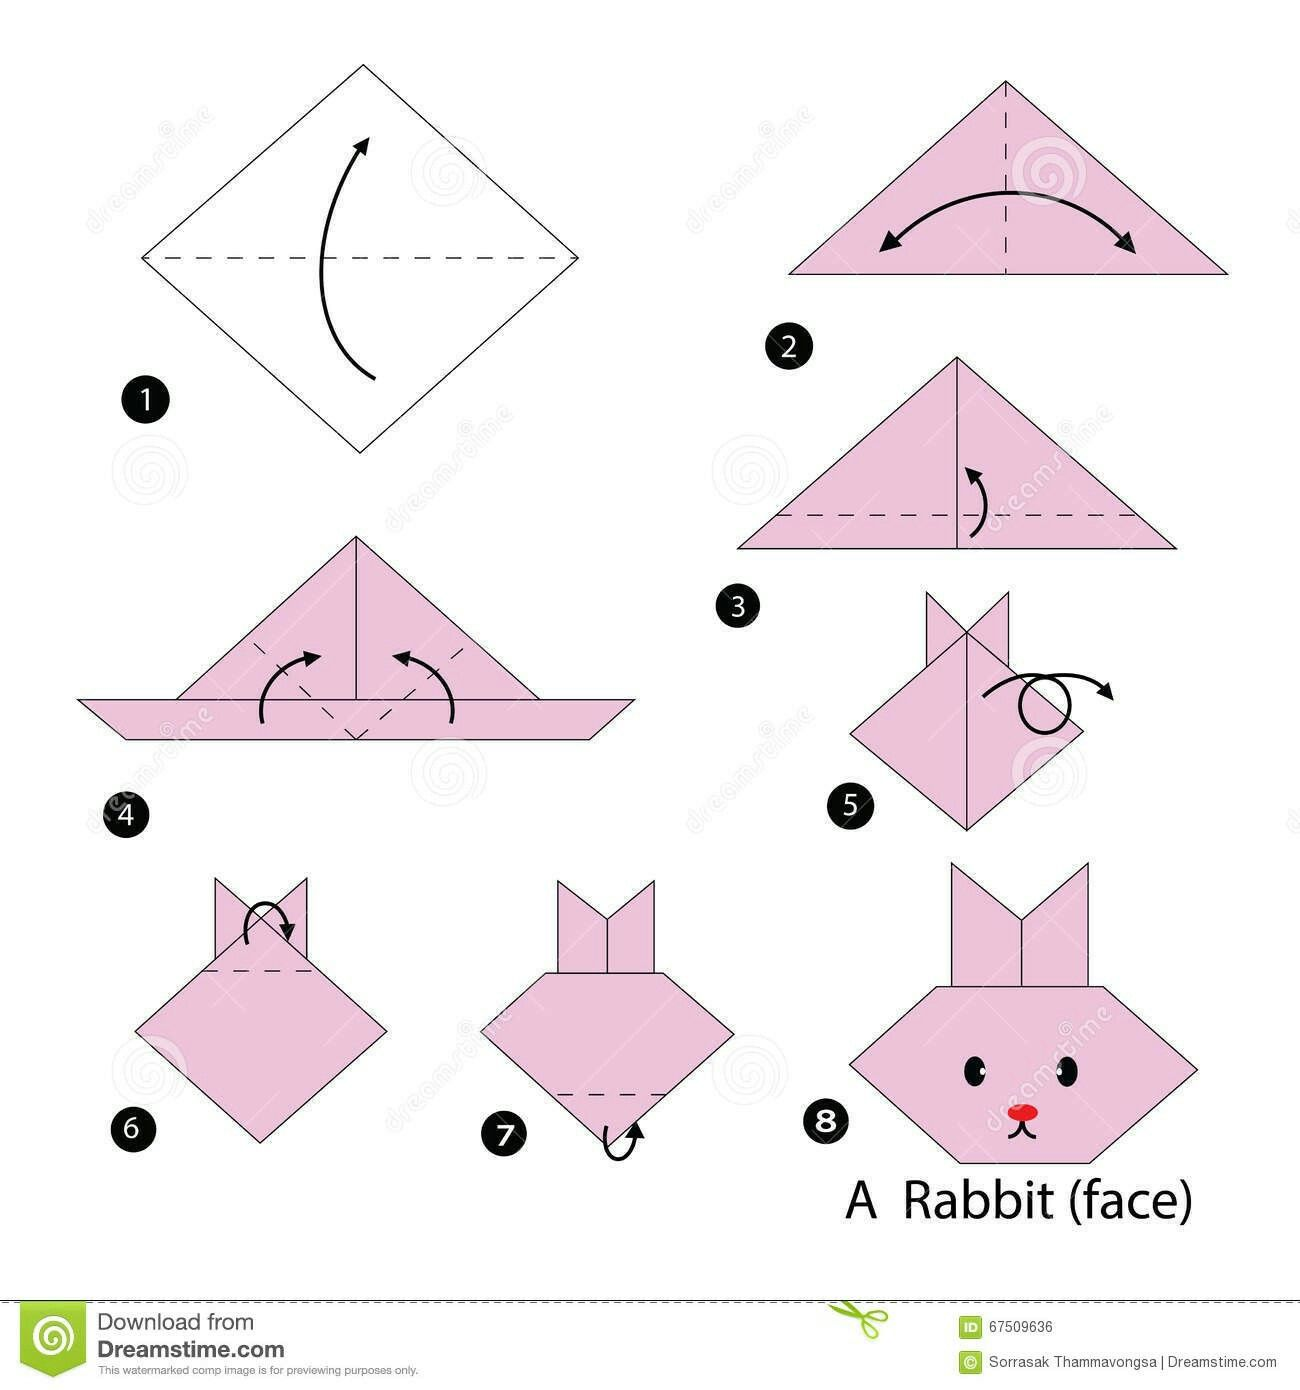 Pin by Kinga ) on Origami Origami easy, Origami rabbit